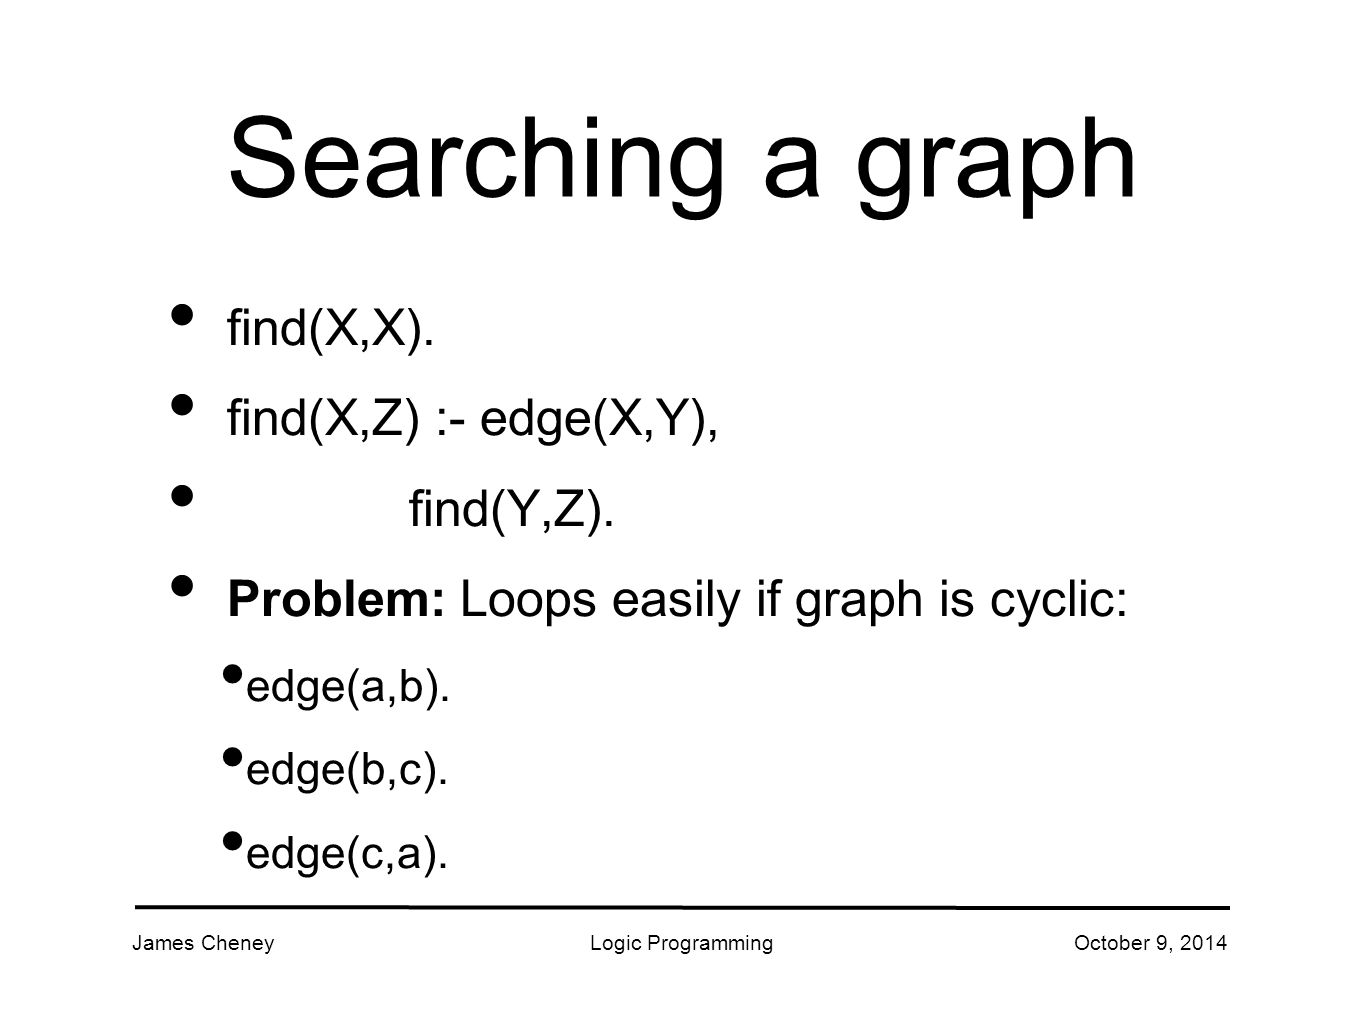 James CheneyLogic ProgrammingOctober 9, 2014 Searching a graph find(X,X).